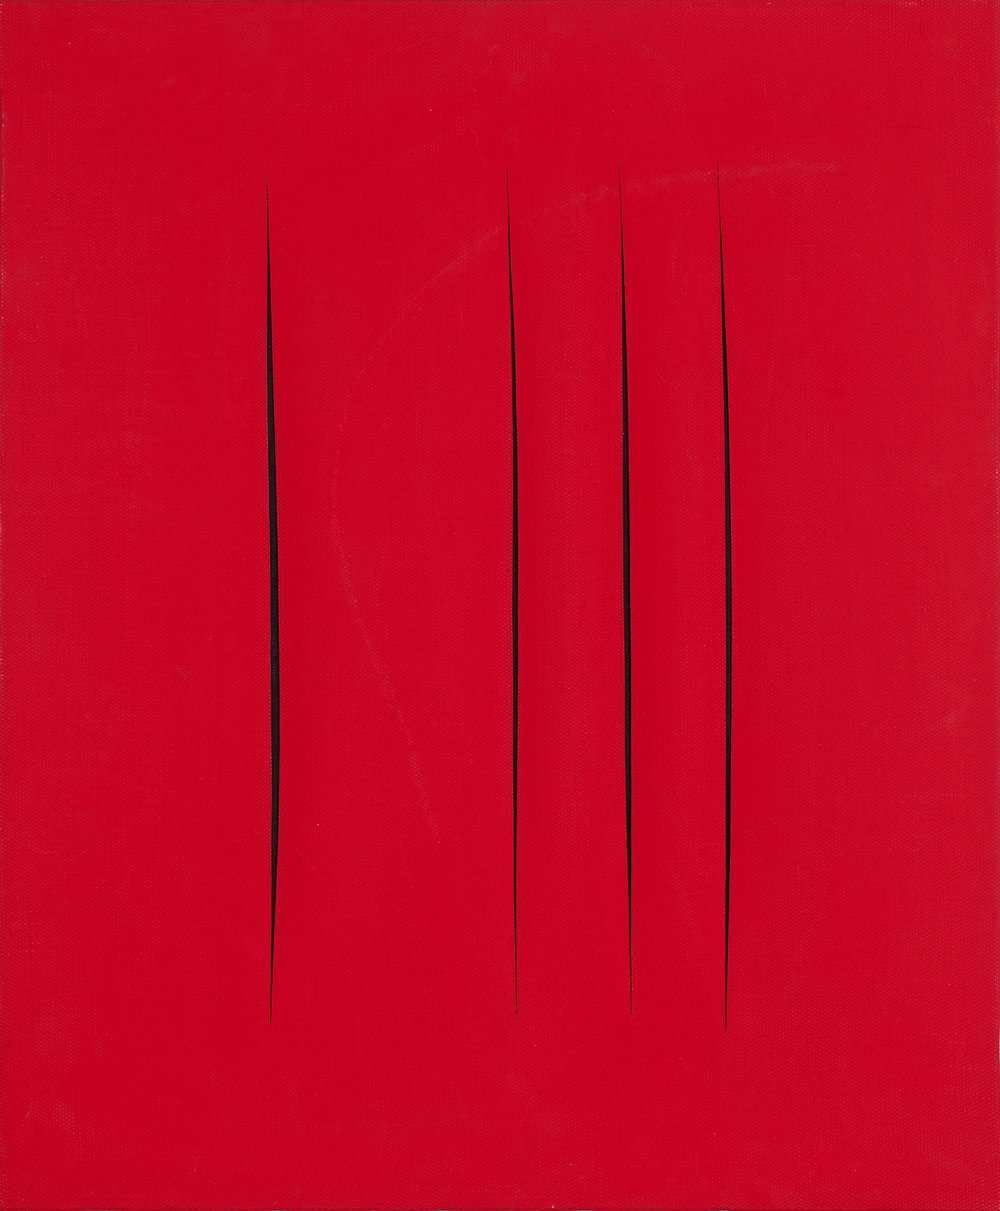 Lucio Fontana   Concetto Spaziale, Attese  1965-66 Watercolor on canvas 61 x 50 cm